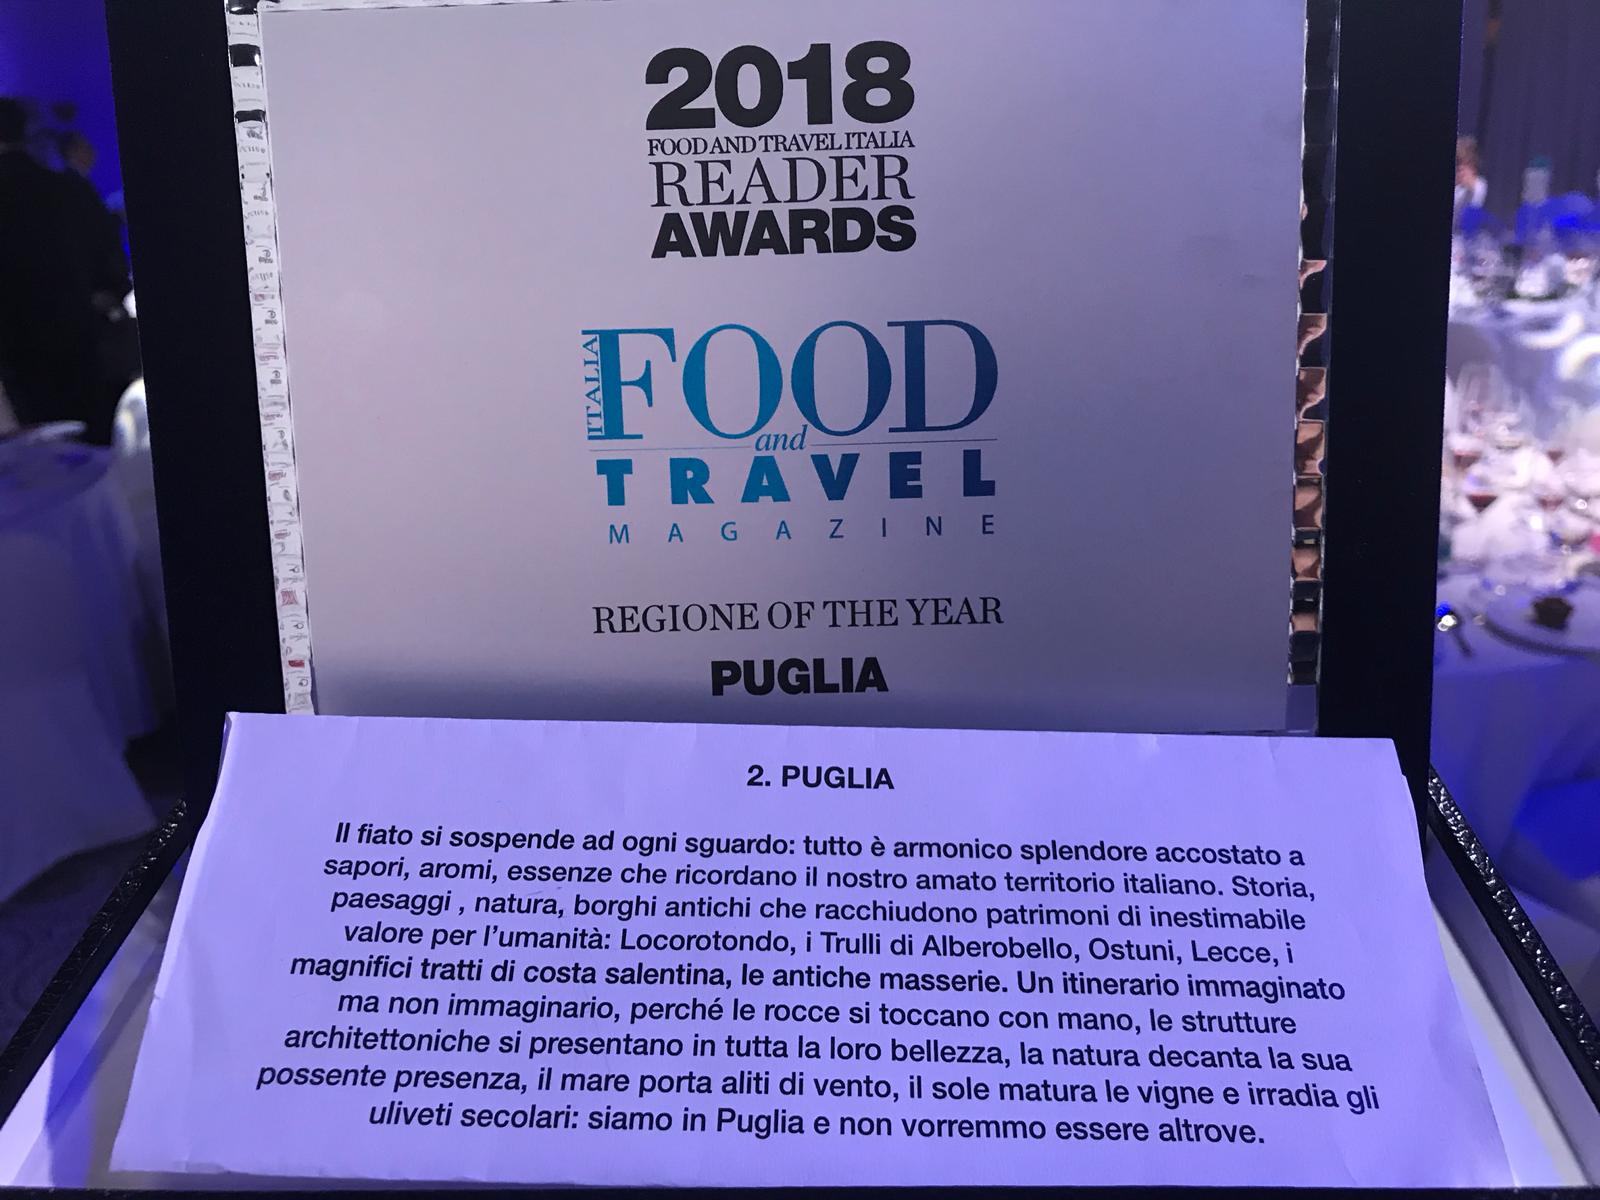 Puglia Regione of the year al Food and Travel Italia Reader Awards 2018